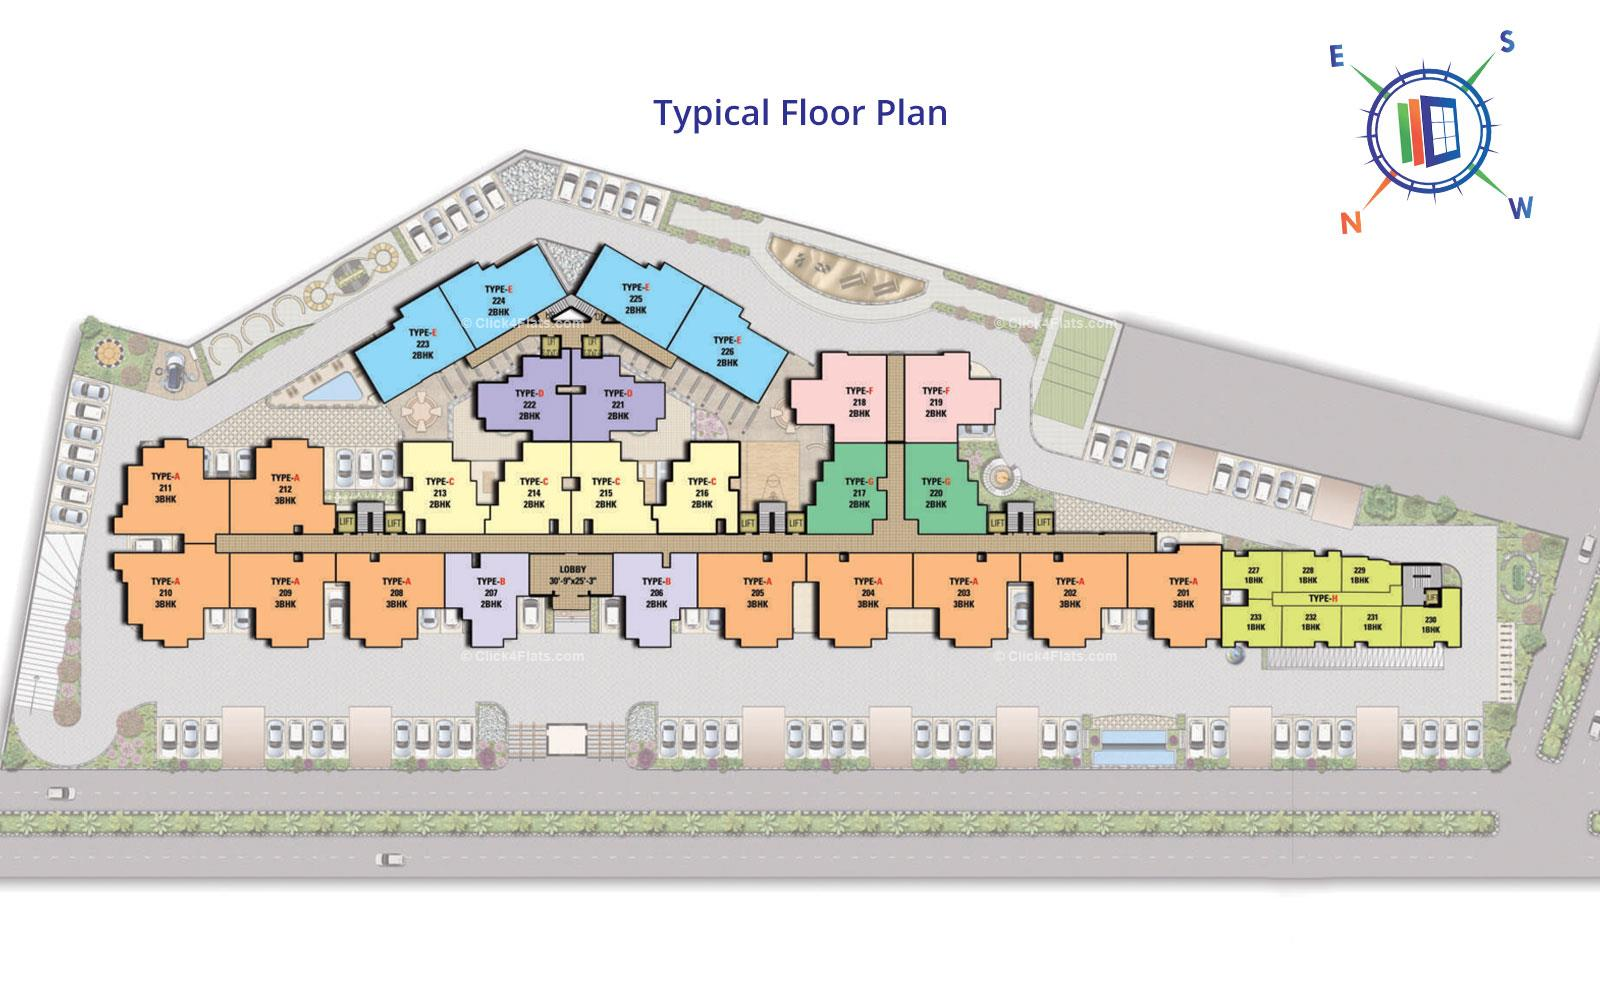 The Destination Typical Floor Plan